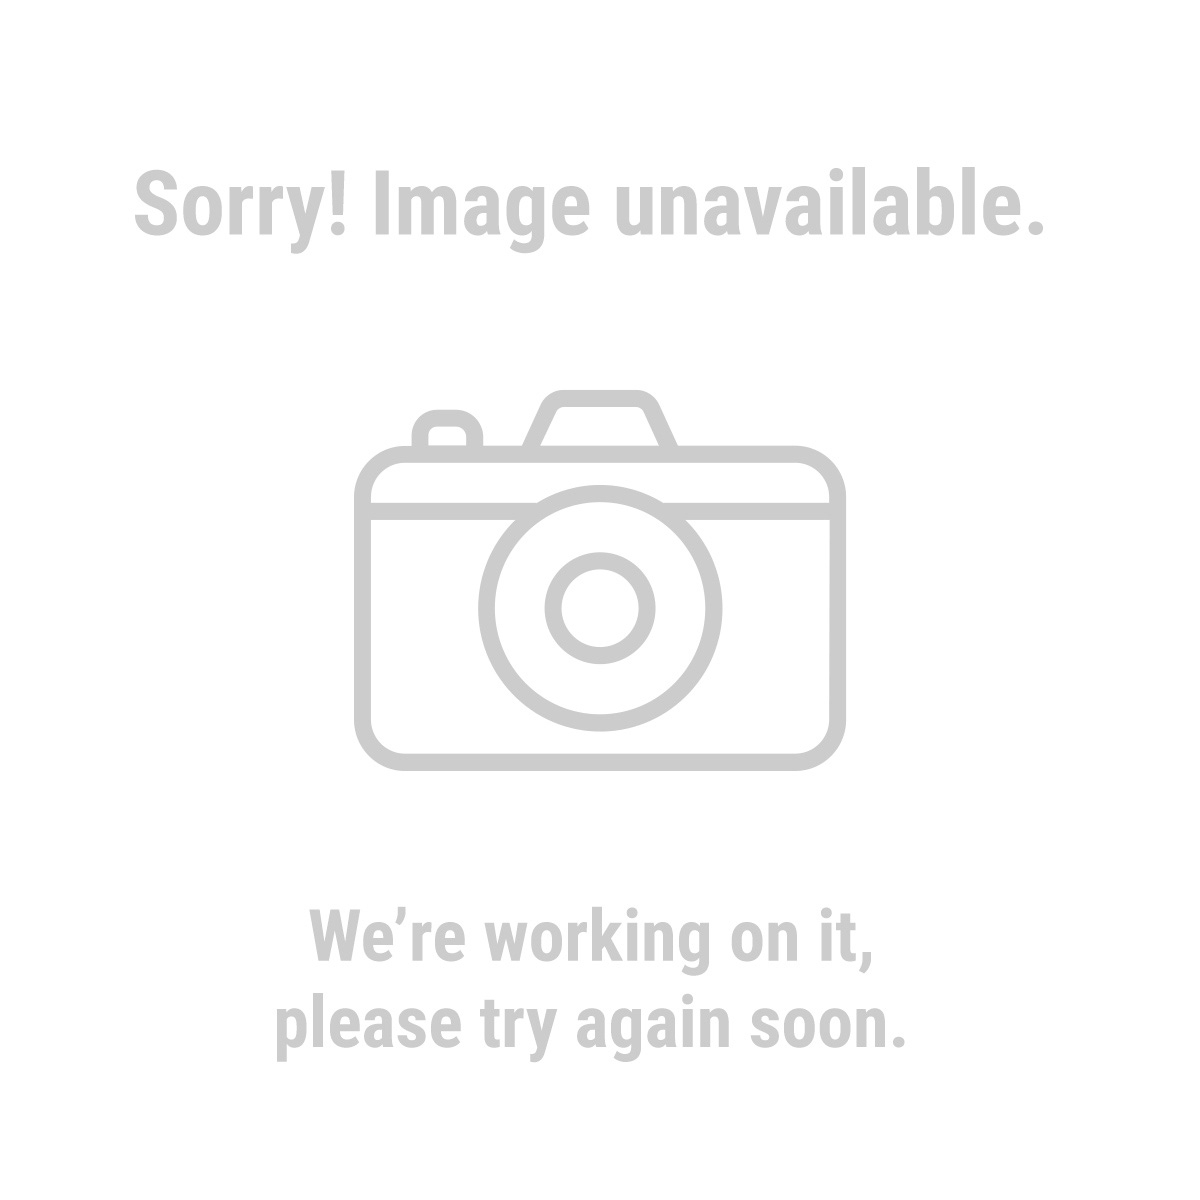 "HFT® 69570 60 ft. x 3/4"" Industrial Grade Electrical Tape"